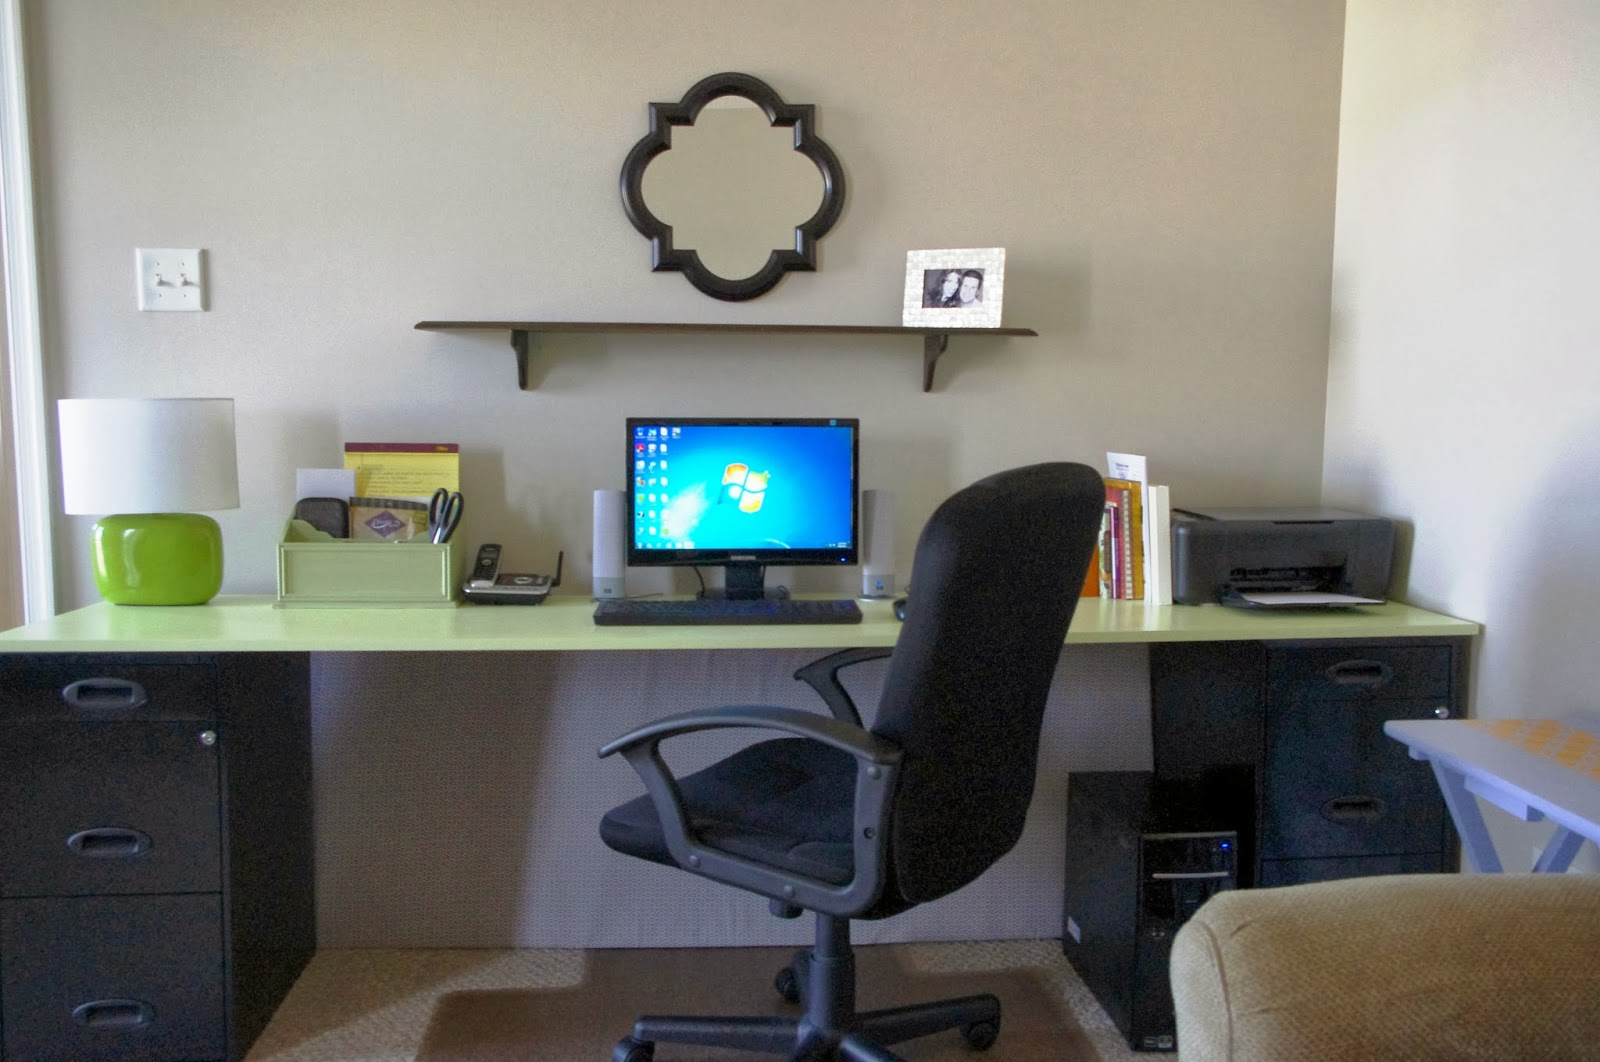 diy office space. But I Still Haven\u0027t Gotten To The Best Part Yet: What\u0027s Underneath, Or More Accurately, What You\u0027re Not Seeing -- And My Children Are Yanking Diy Office Space D